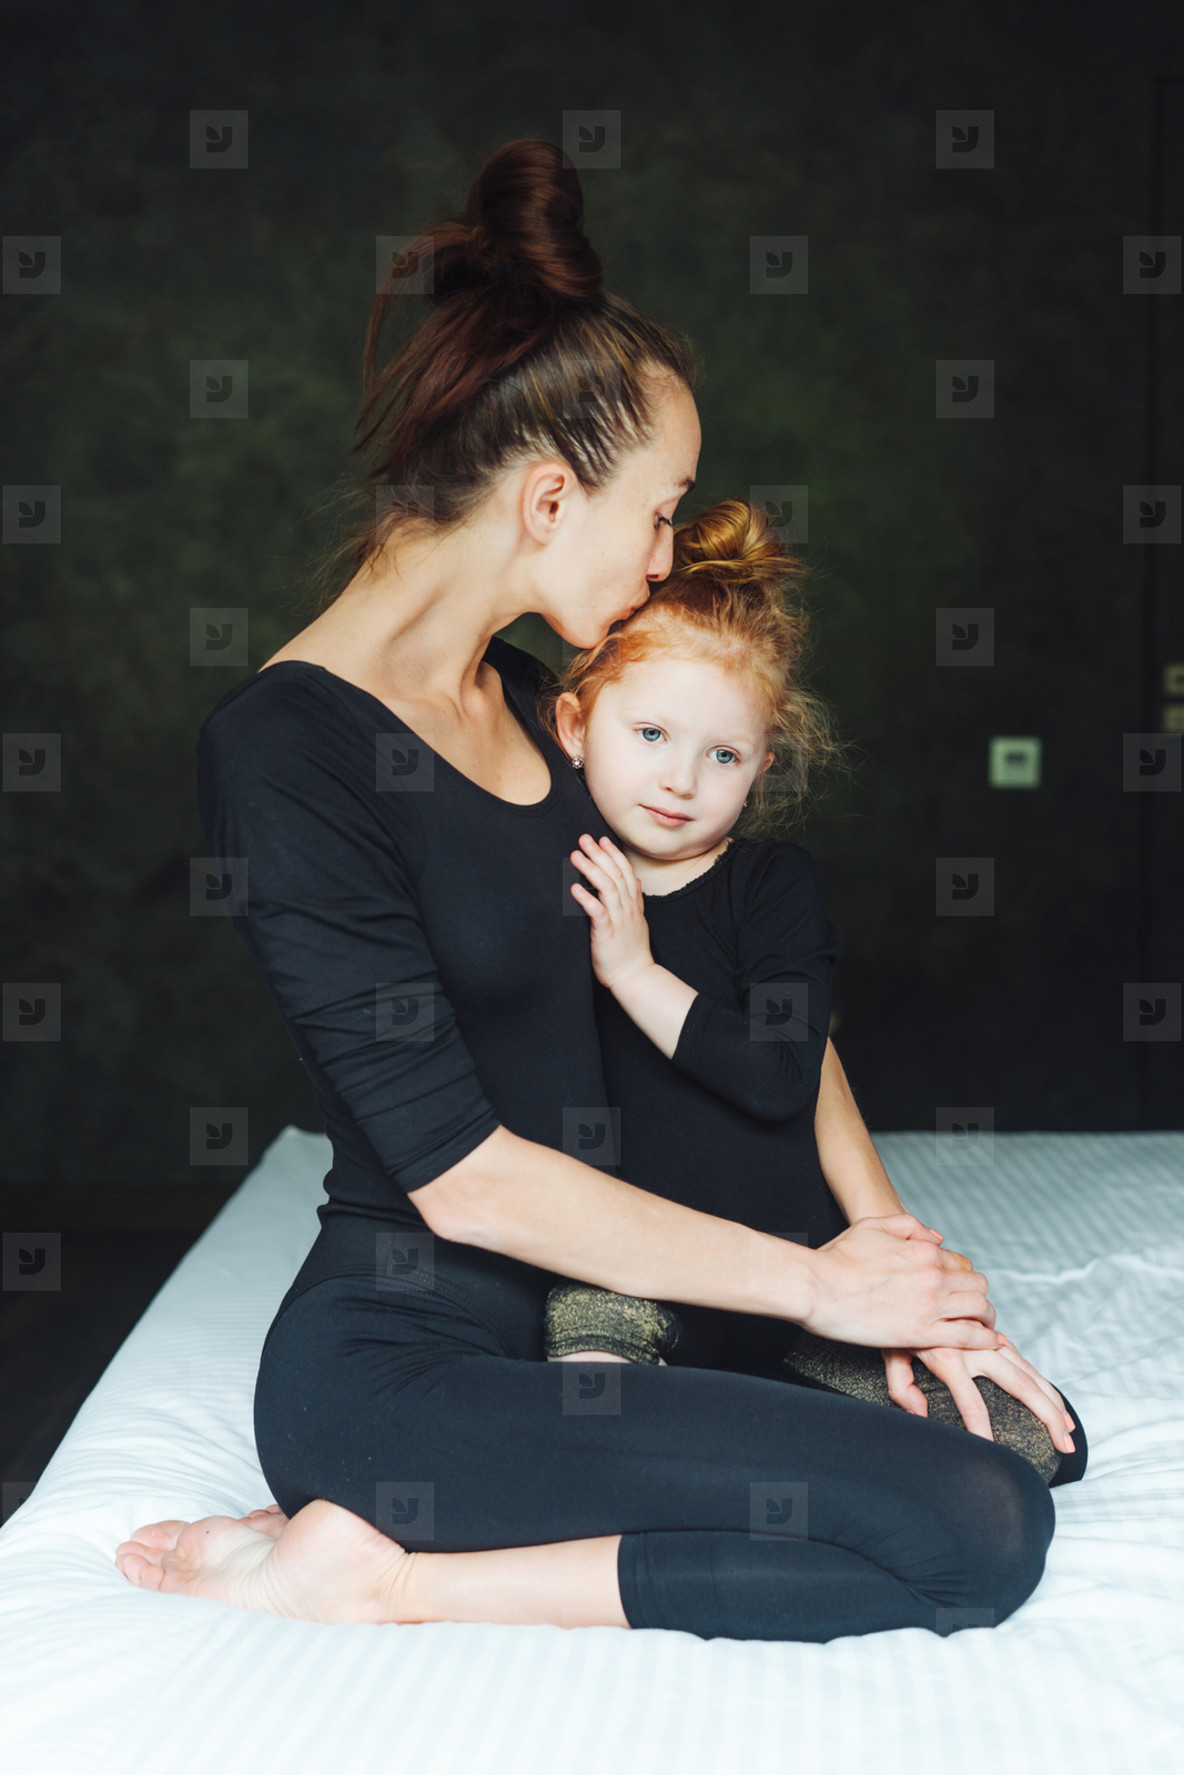 Mom and daughter have fun on the bed